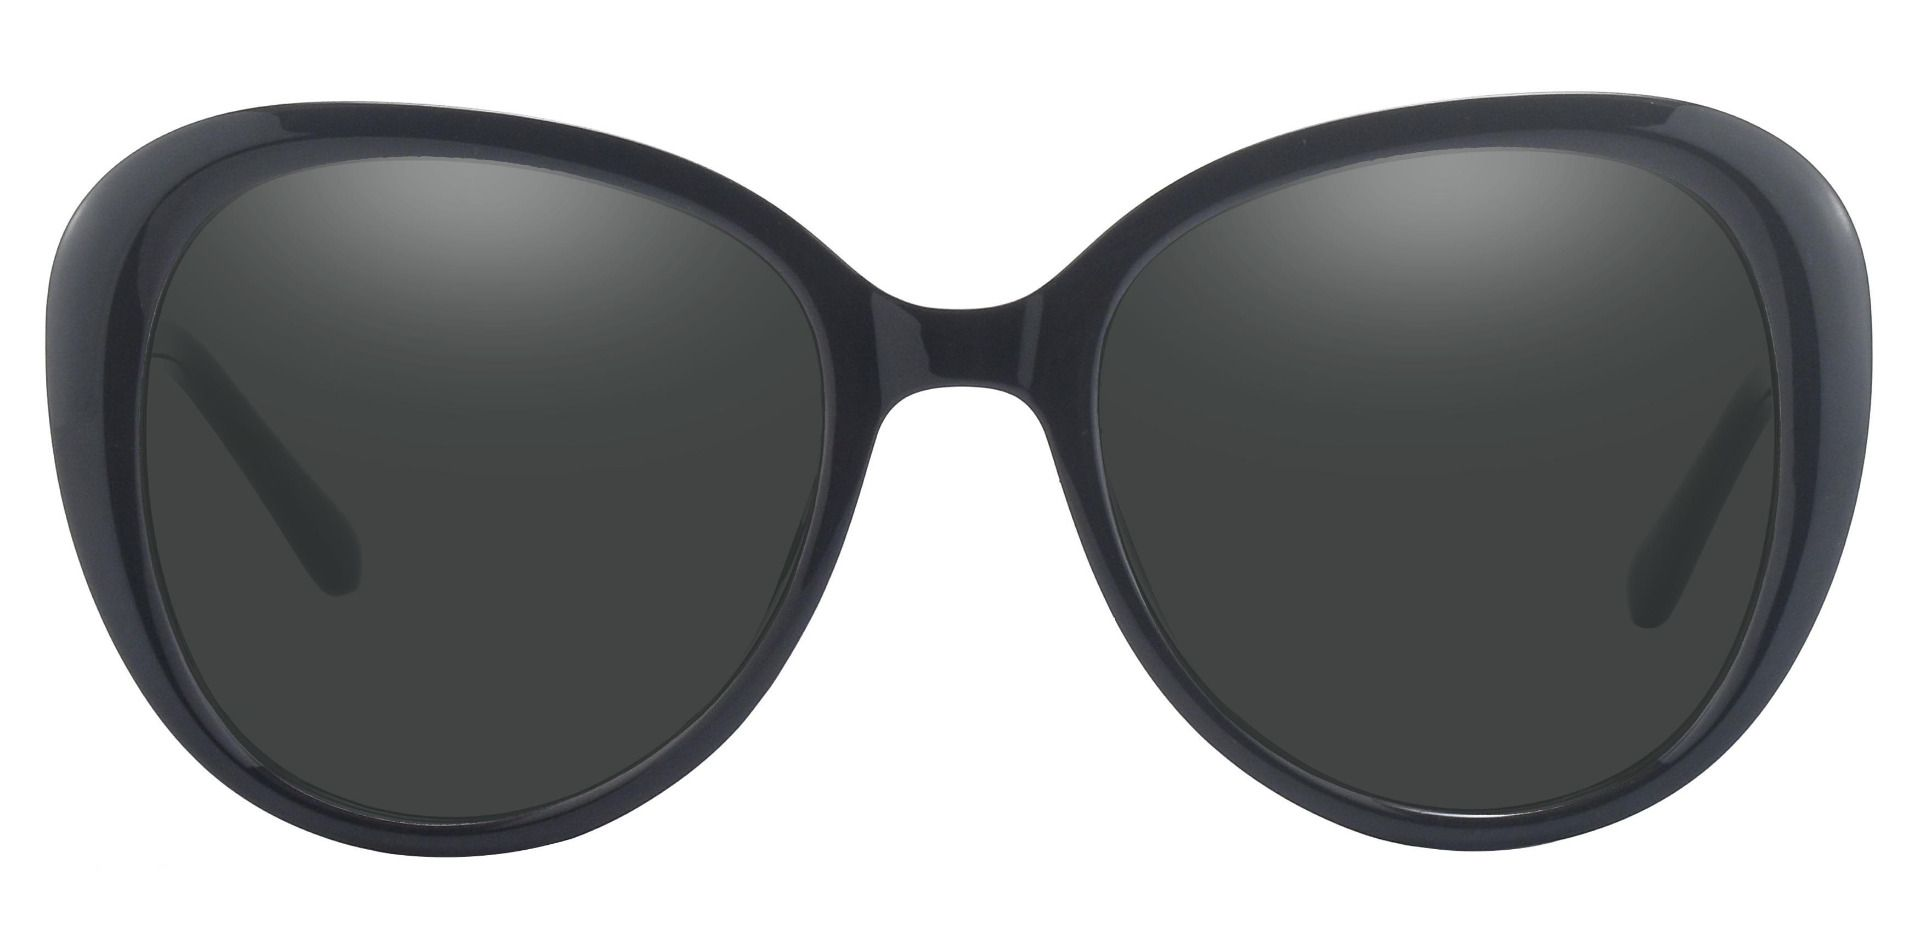 Sheridan Oval Non-Rx Sunglasses - Black Frame With Gray Lenses